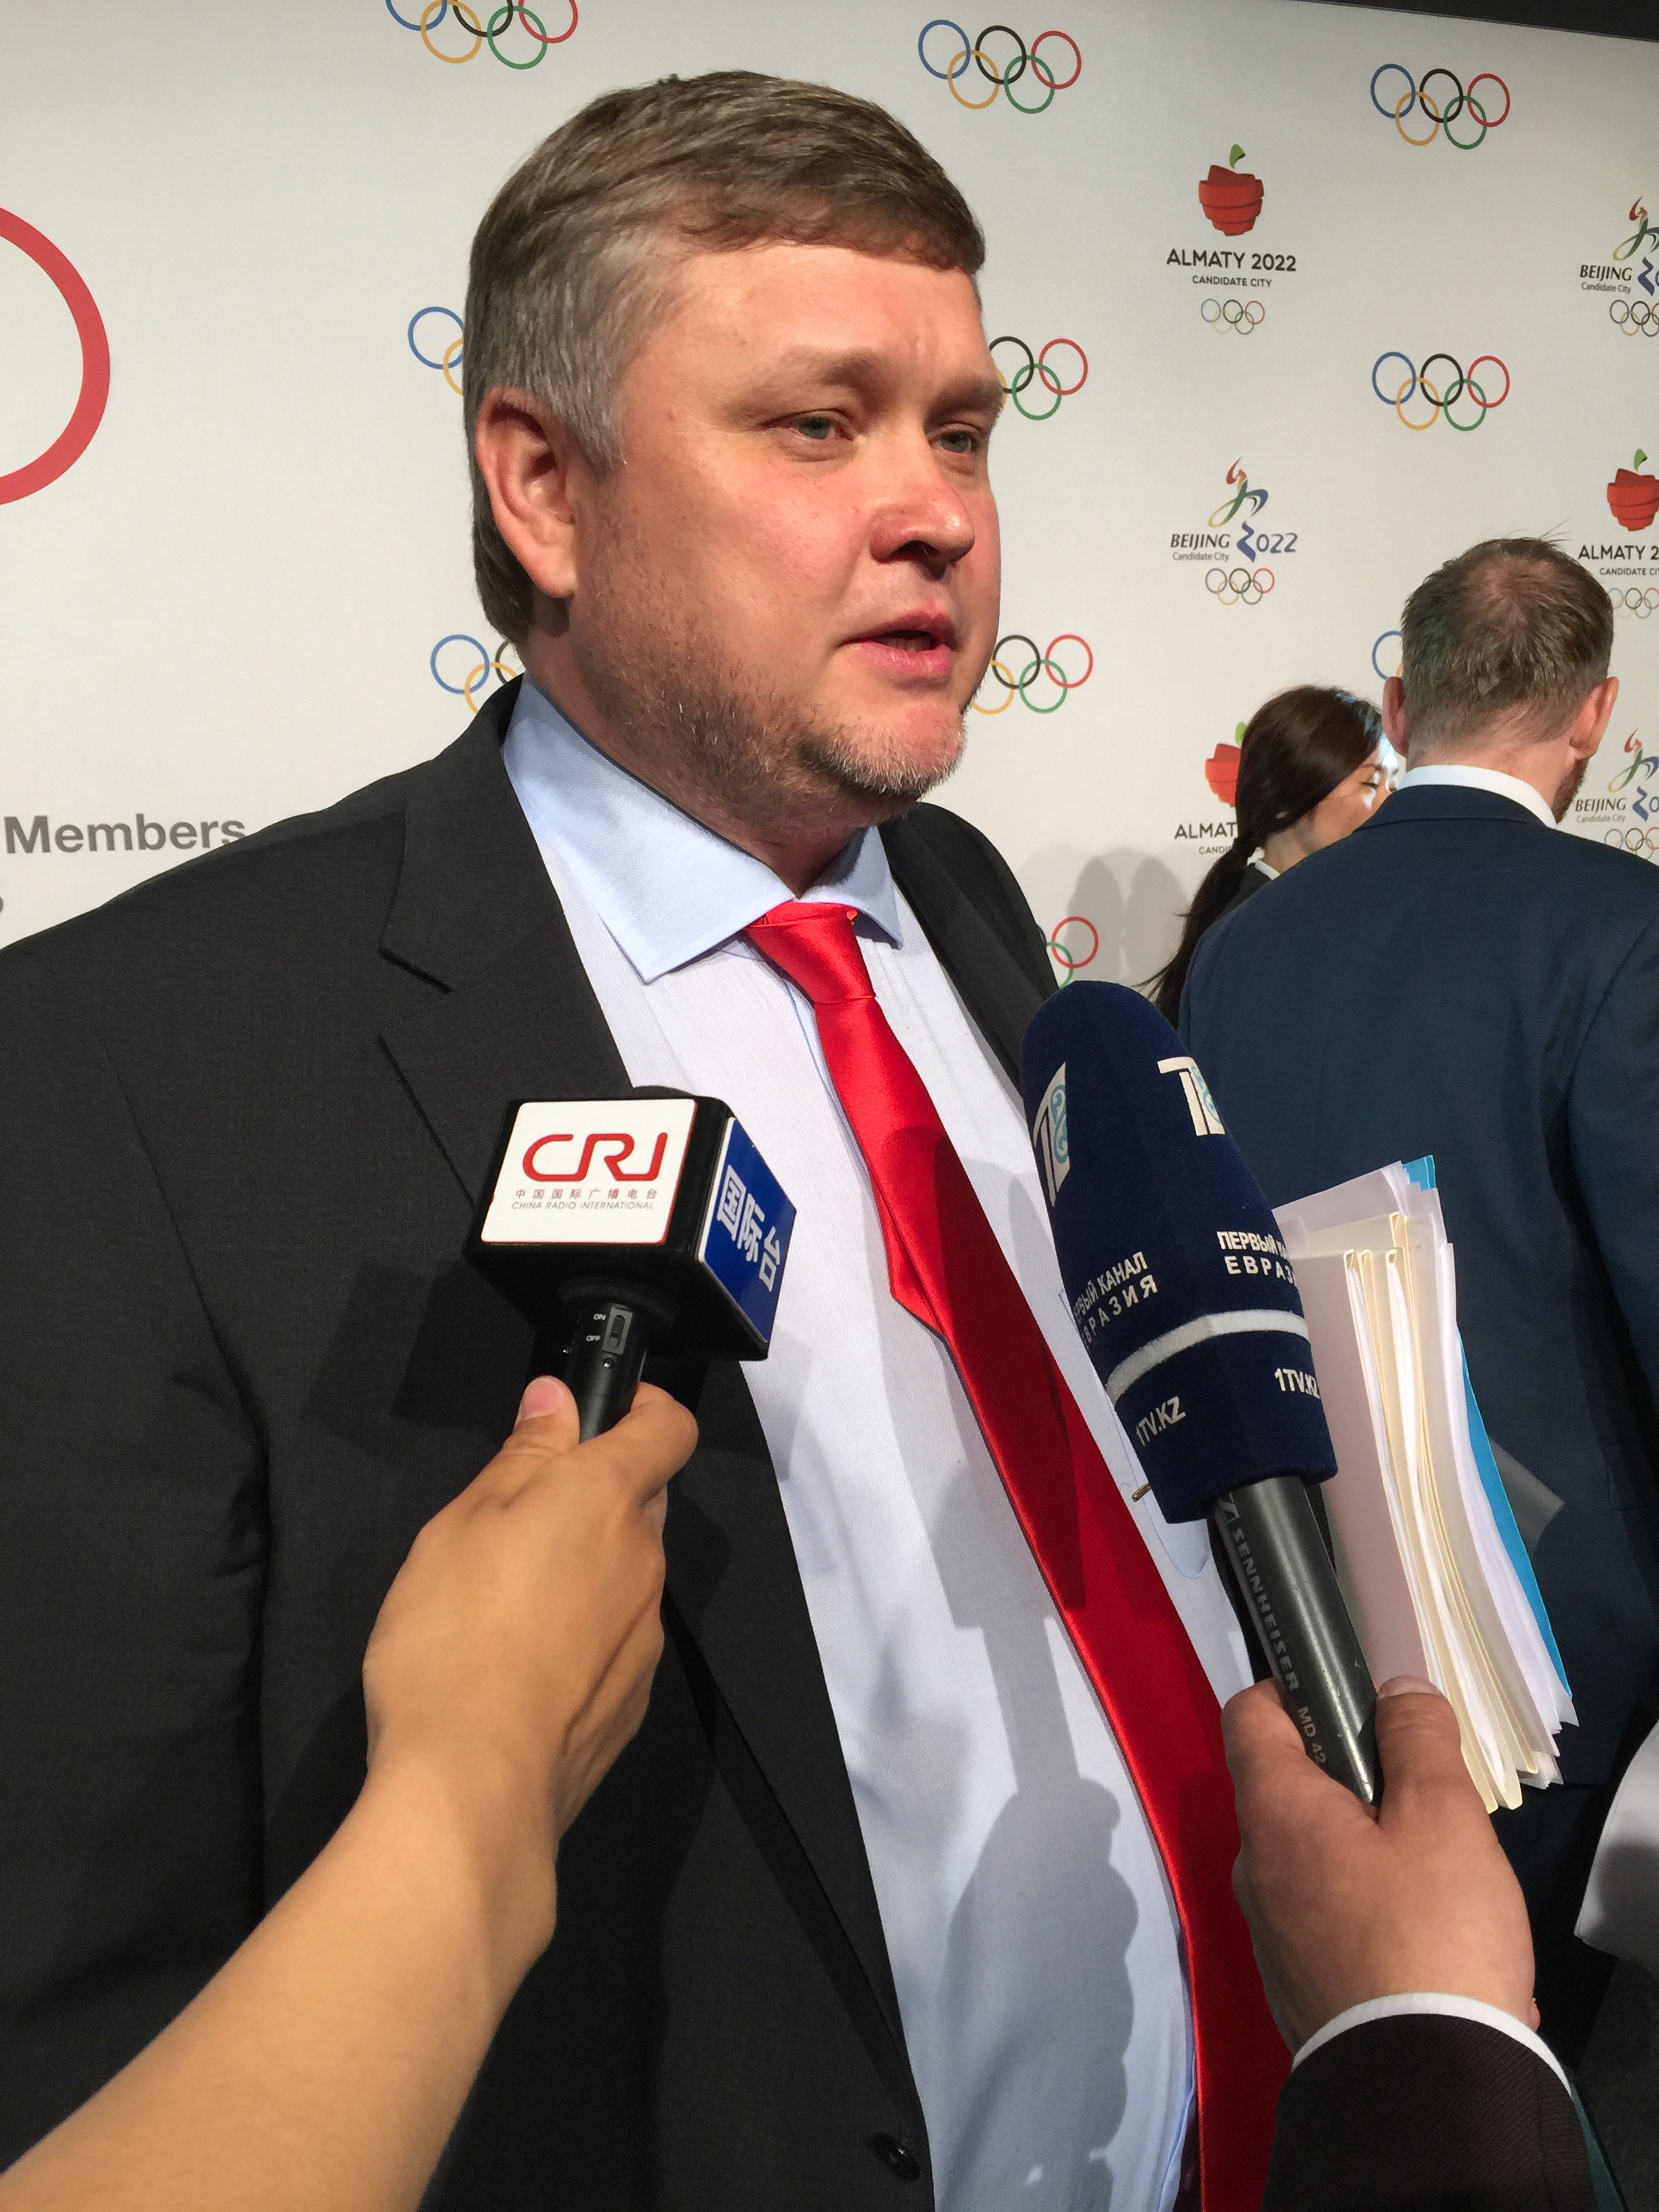 Almaty 2022 vice chairman Andrey Kryukov answers reporters' questions after the bid presentation to IOC members at the Olympic Museum